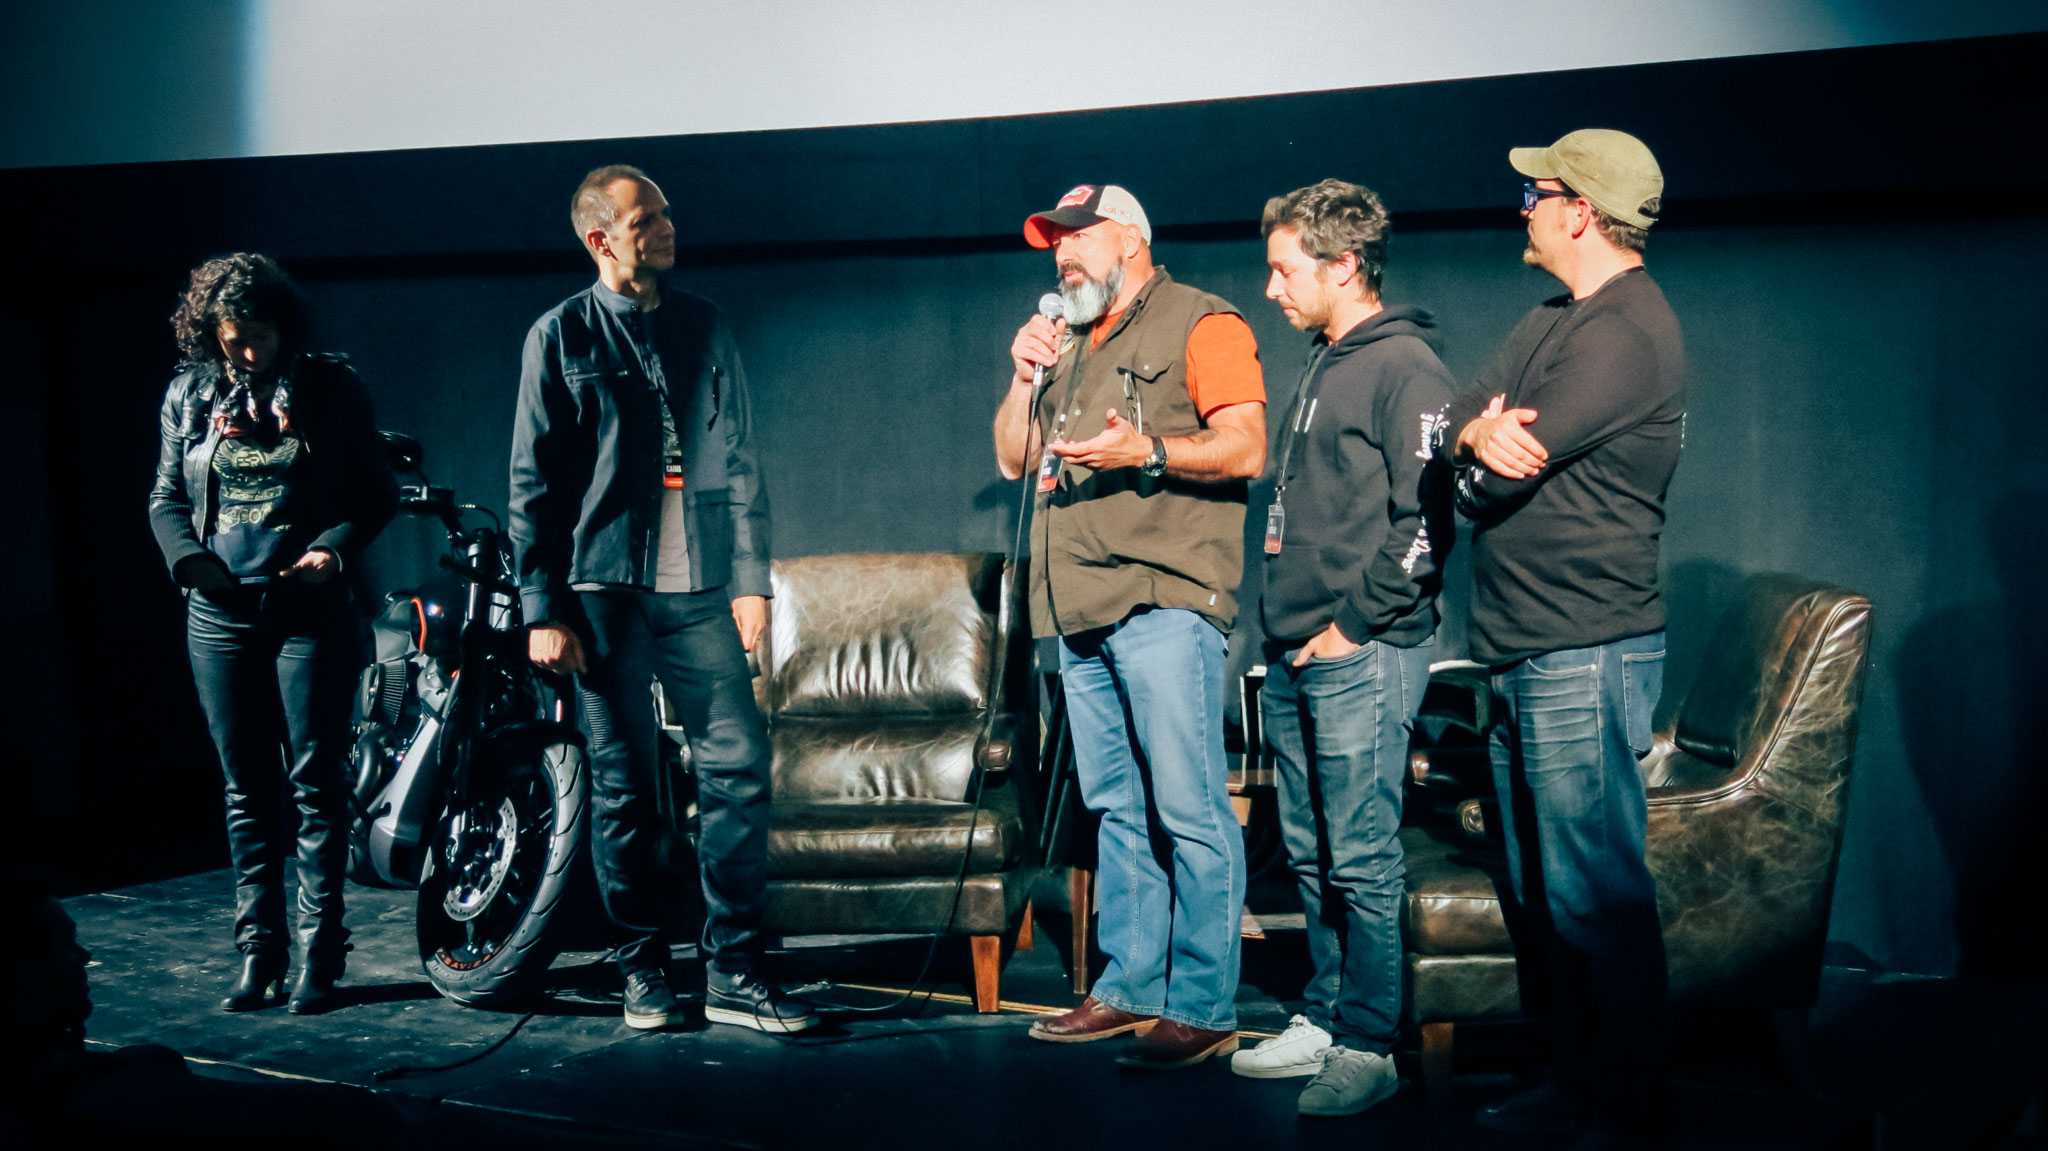 Cast and crew of No Highway Q&A